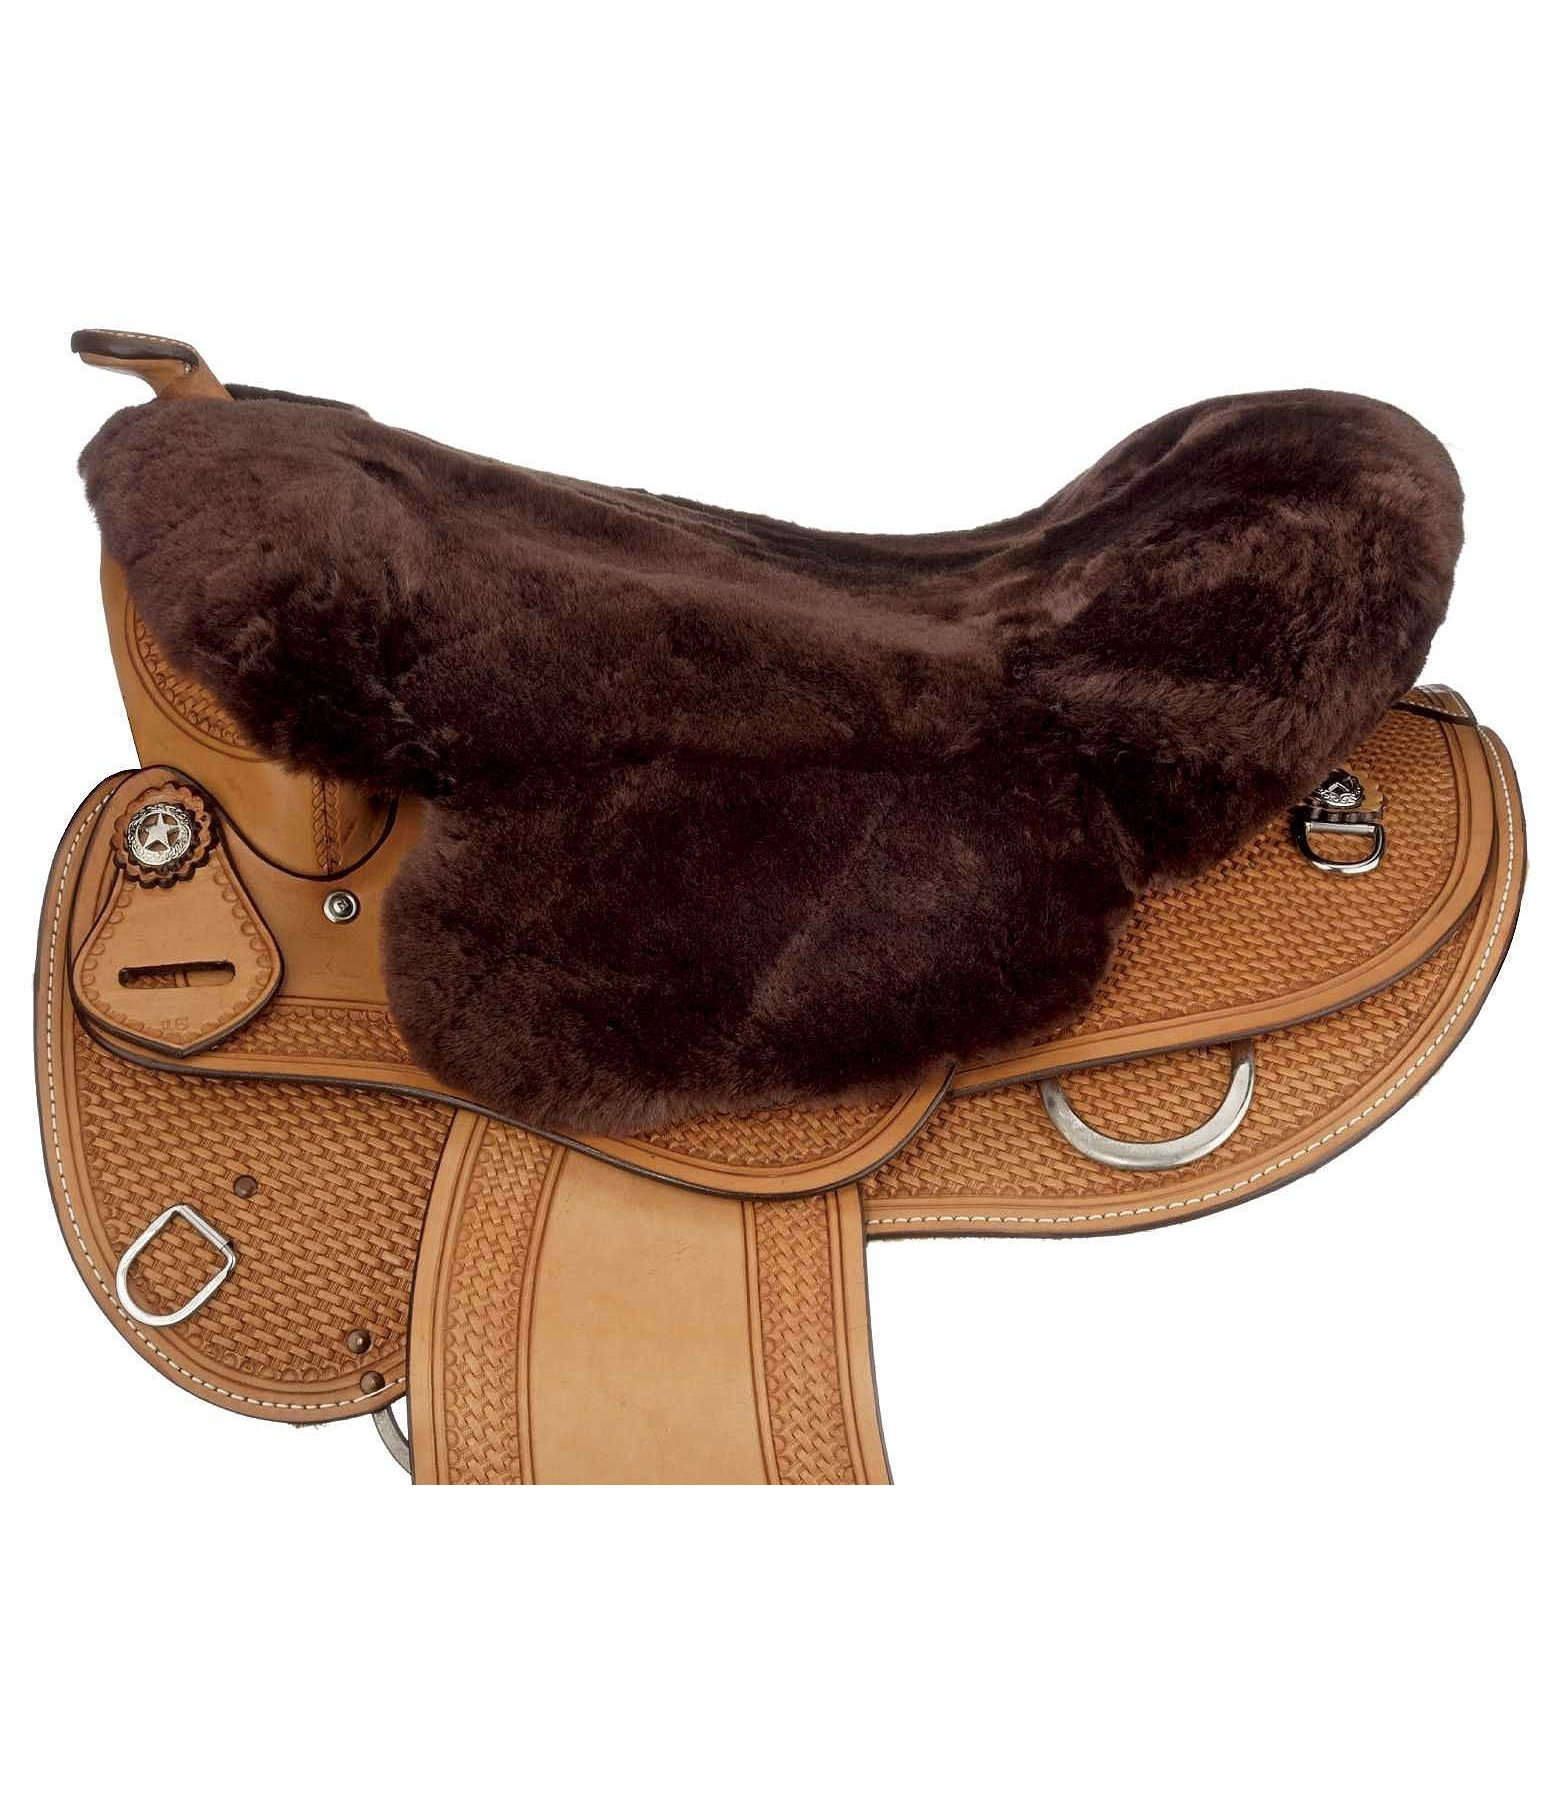 Sheepskin Saddle Cover with Horn